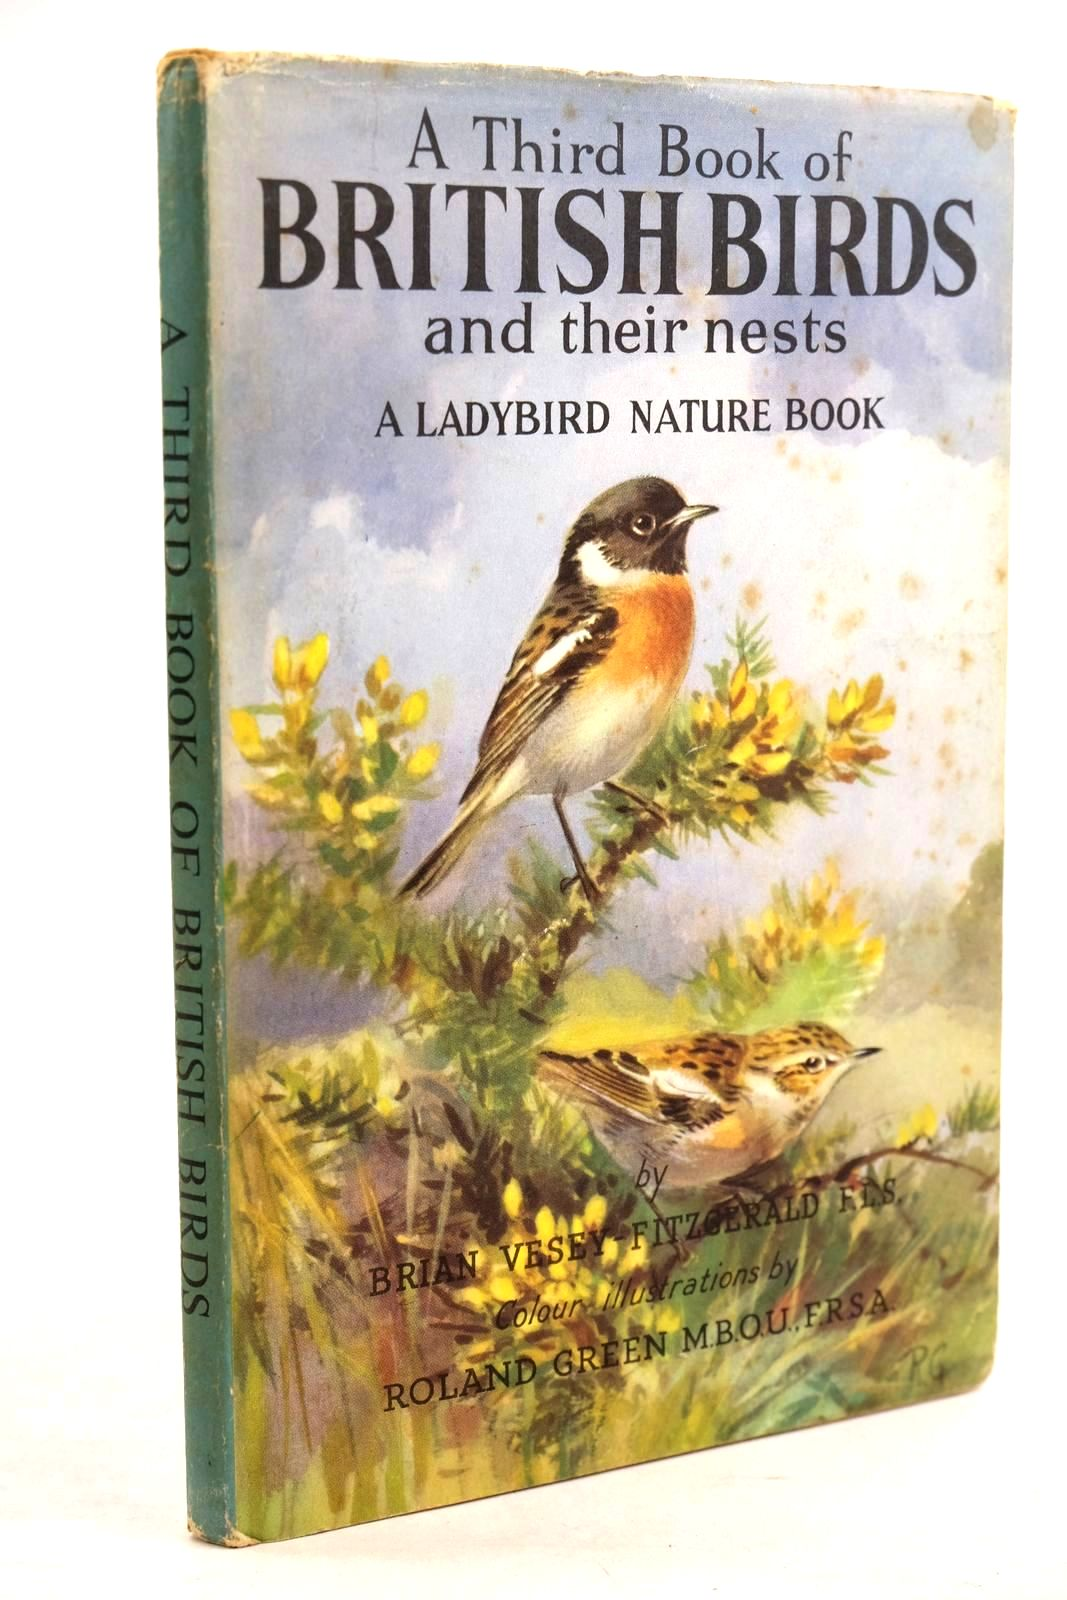 Photo of A THIRD BOOK OF BRITISH BIRDS AND THEIR NESTS written by Vesey-Fitzgerald, Brian illustrated by Green, Roland published by Wills & Hepworth Ltd. (STOCK CODE: 1320634)  for sale by Stella & Rose's Books